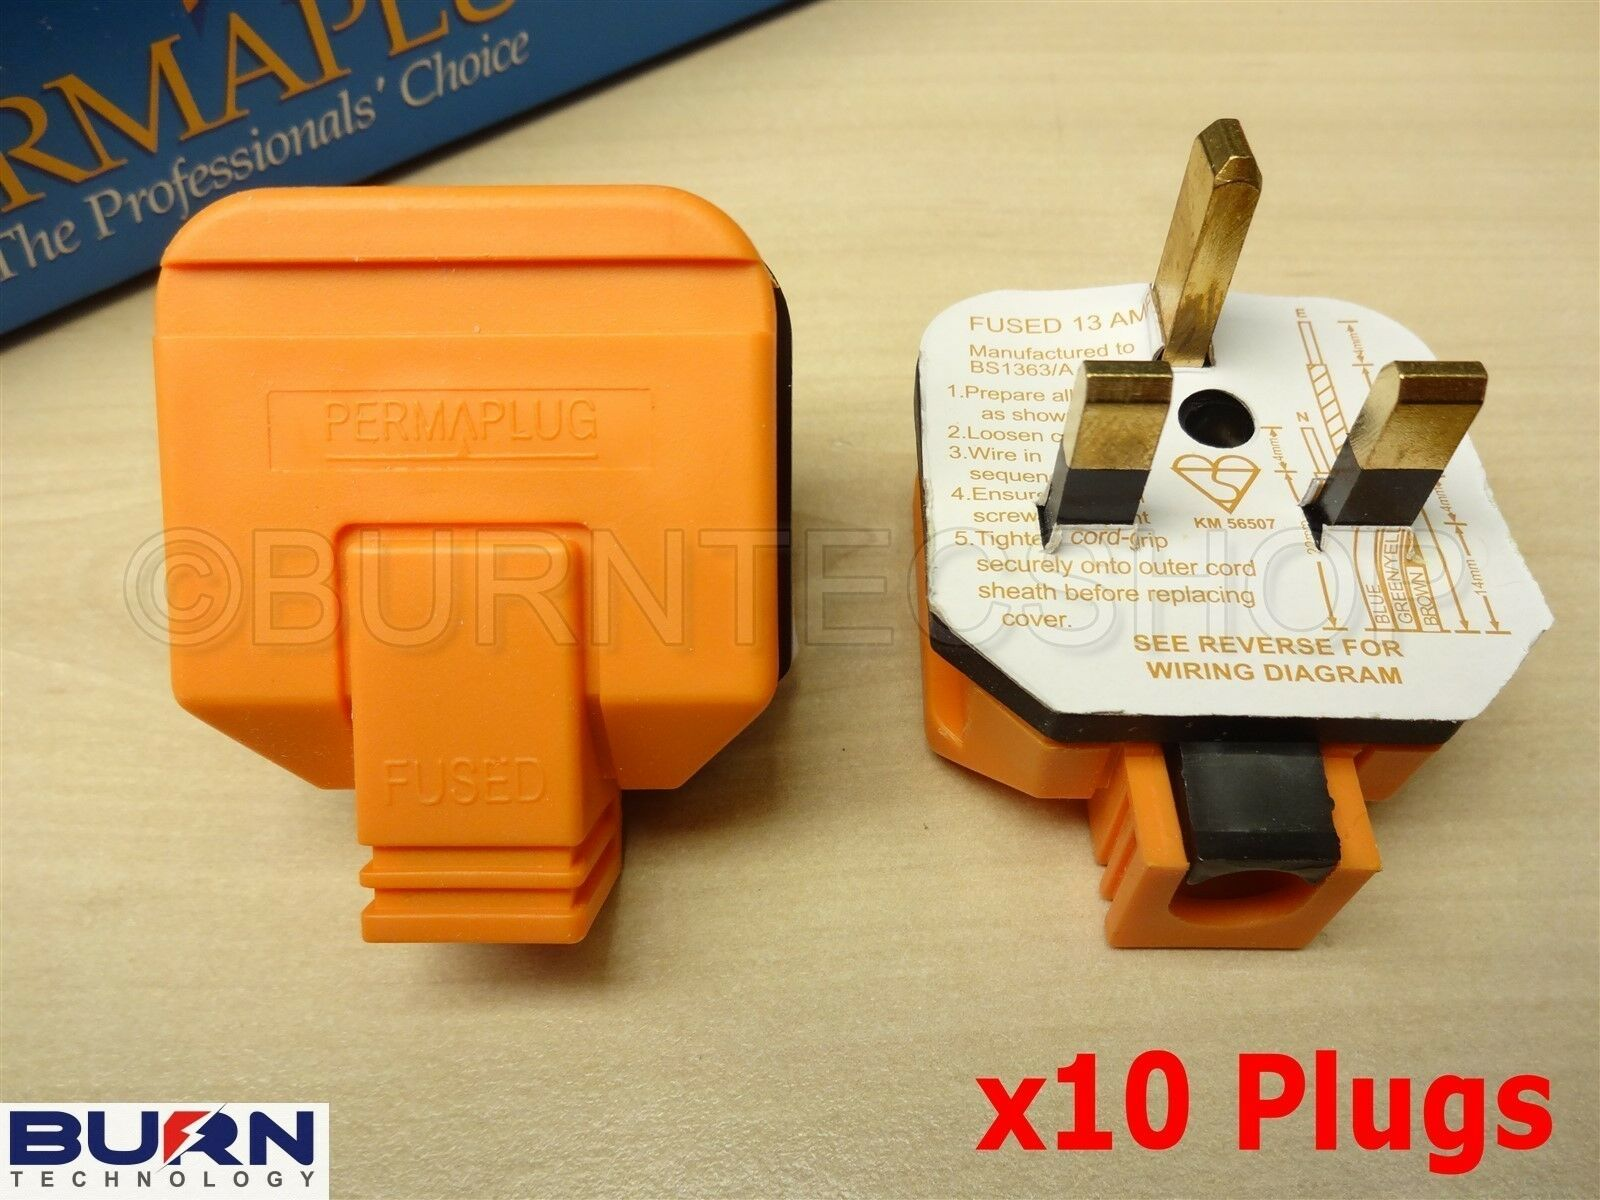 10 X Orange Heavy Duty Industrial Quality Plugs 13a Fuse Appliance X10 Wiring Diagram Uk Plug Top